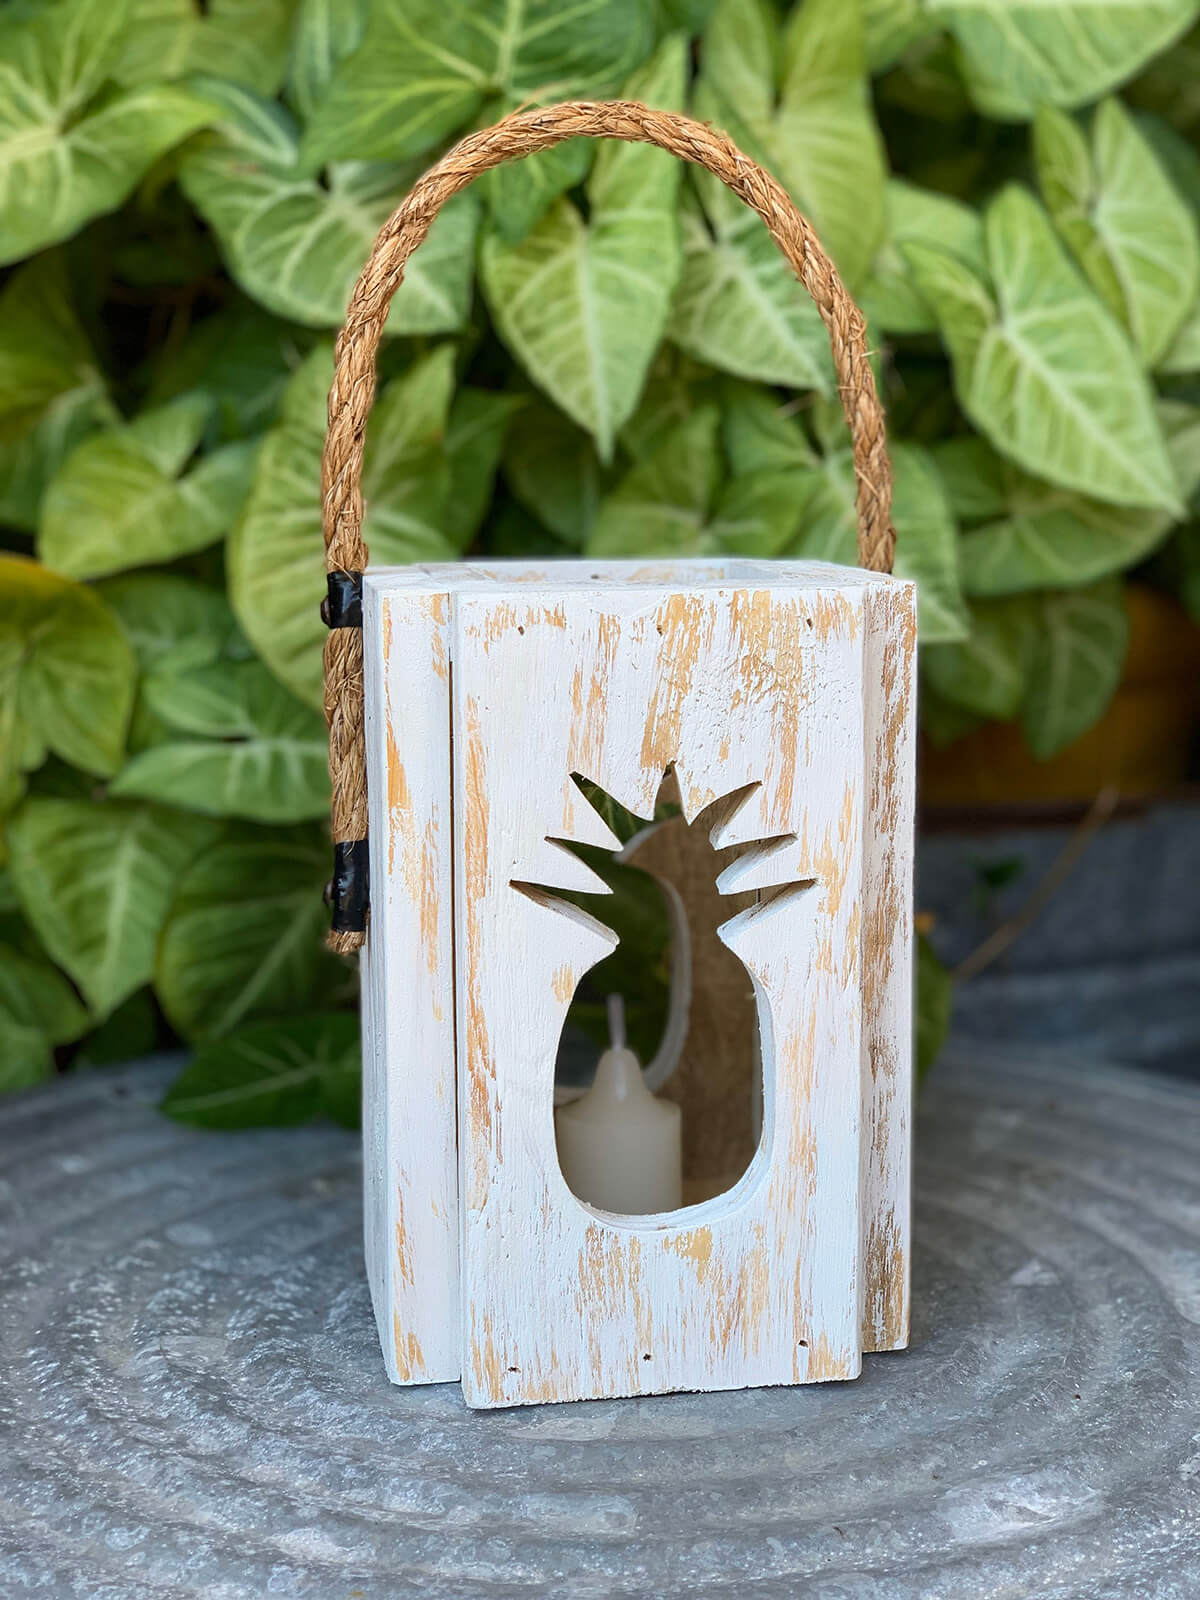 Rustic Wooden Lantern with Pineapple Cutout